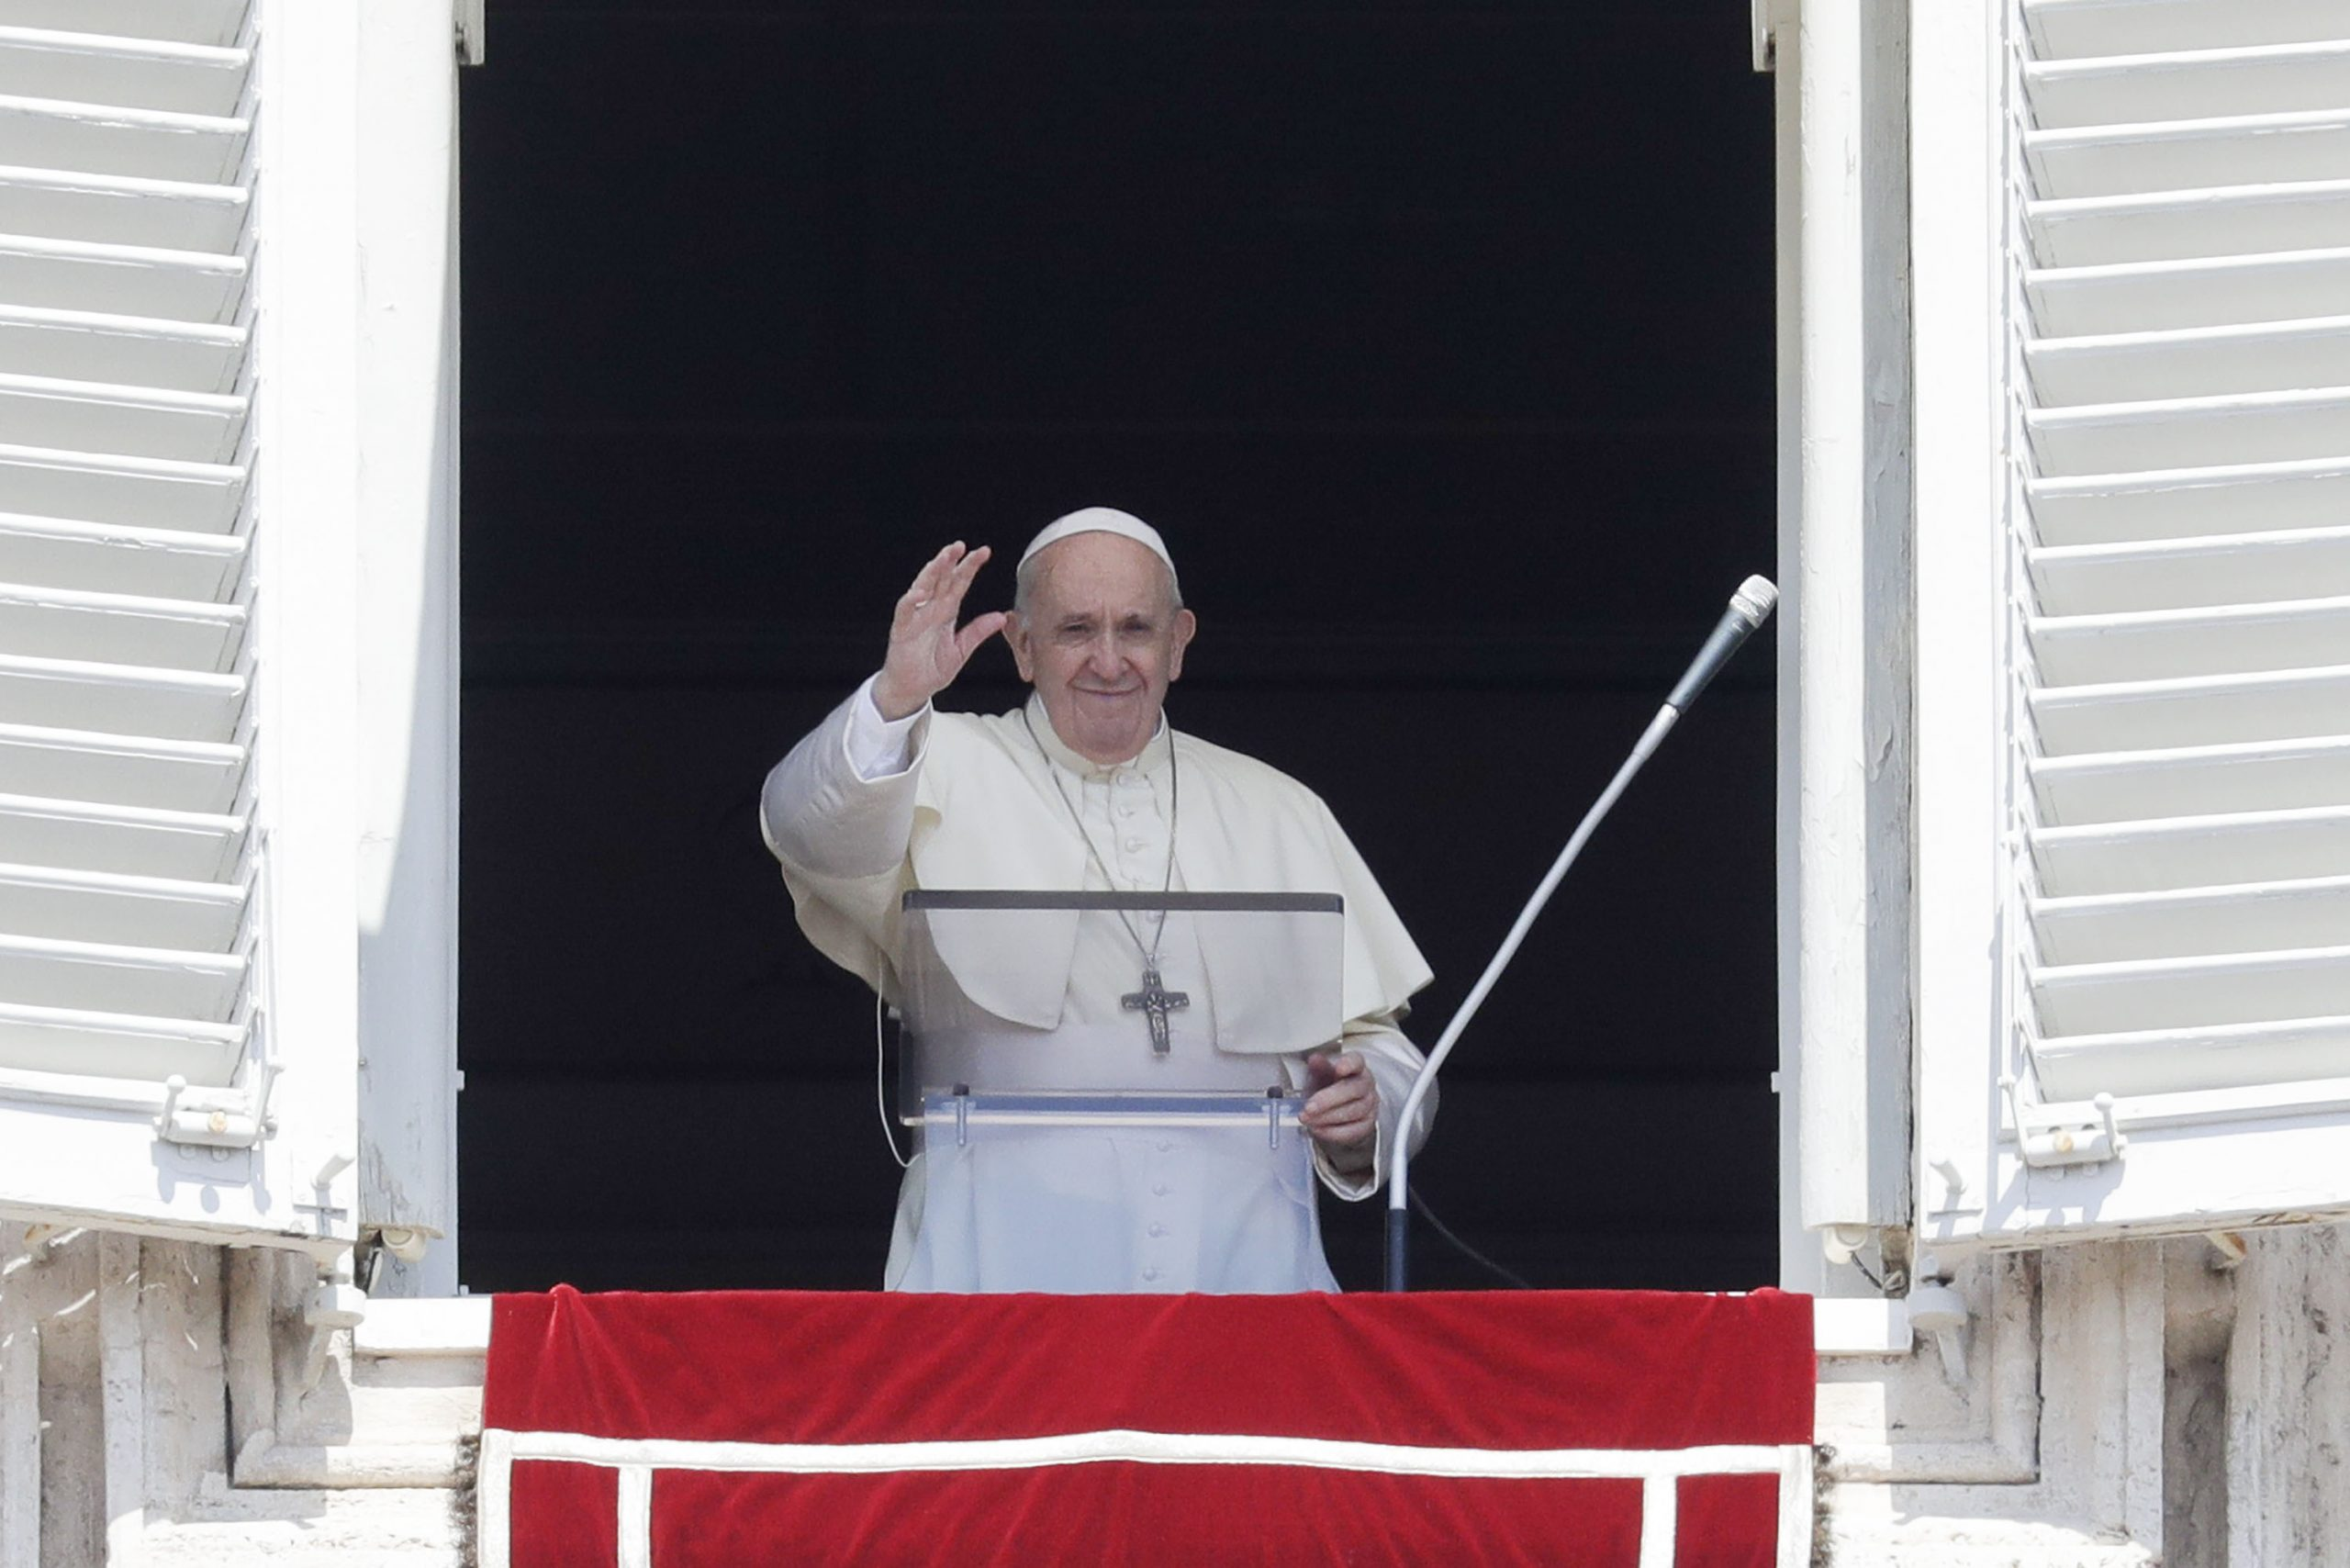 Pope Francis is pictured on August 15, as he delivers his blessing from the window of his studio overlooking St. Peter's Square, at the Vatican.